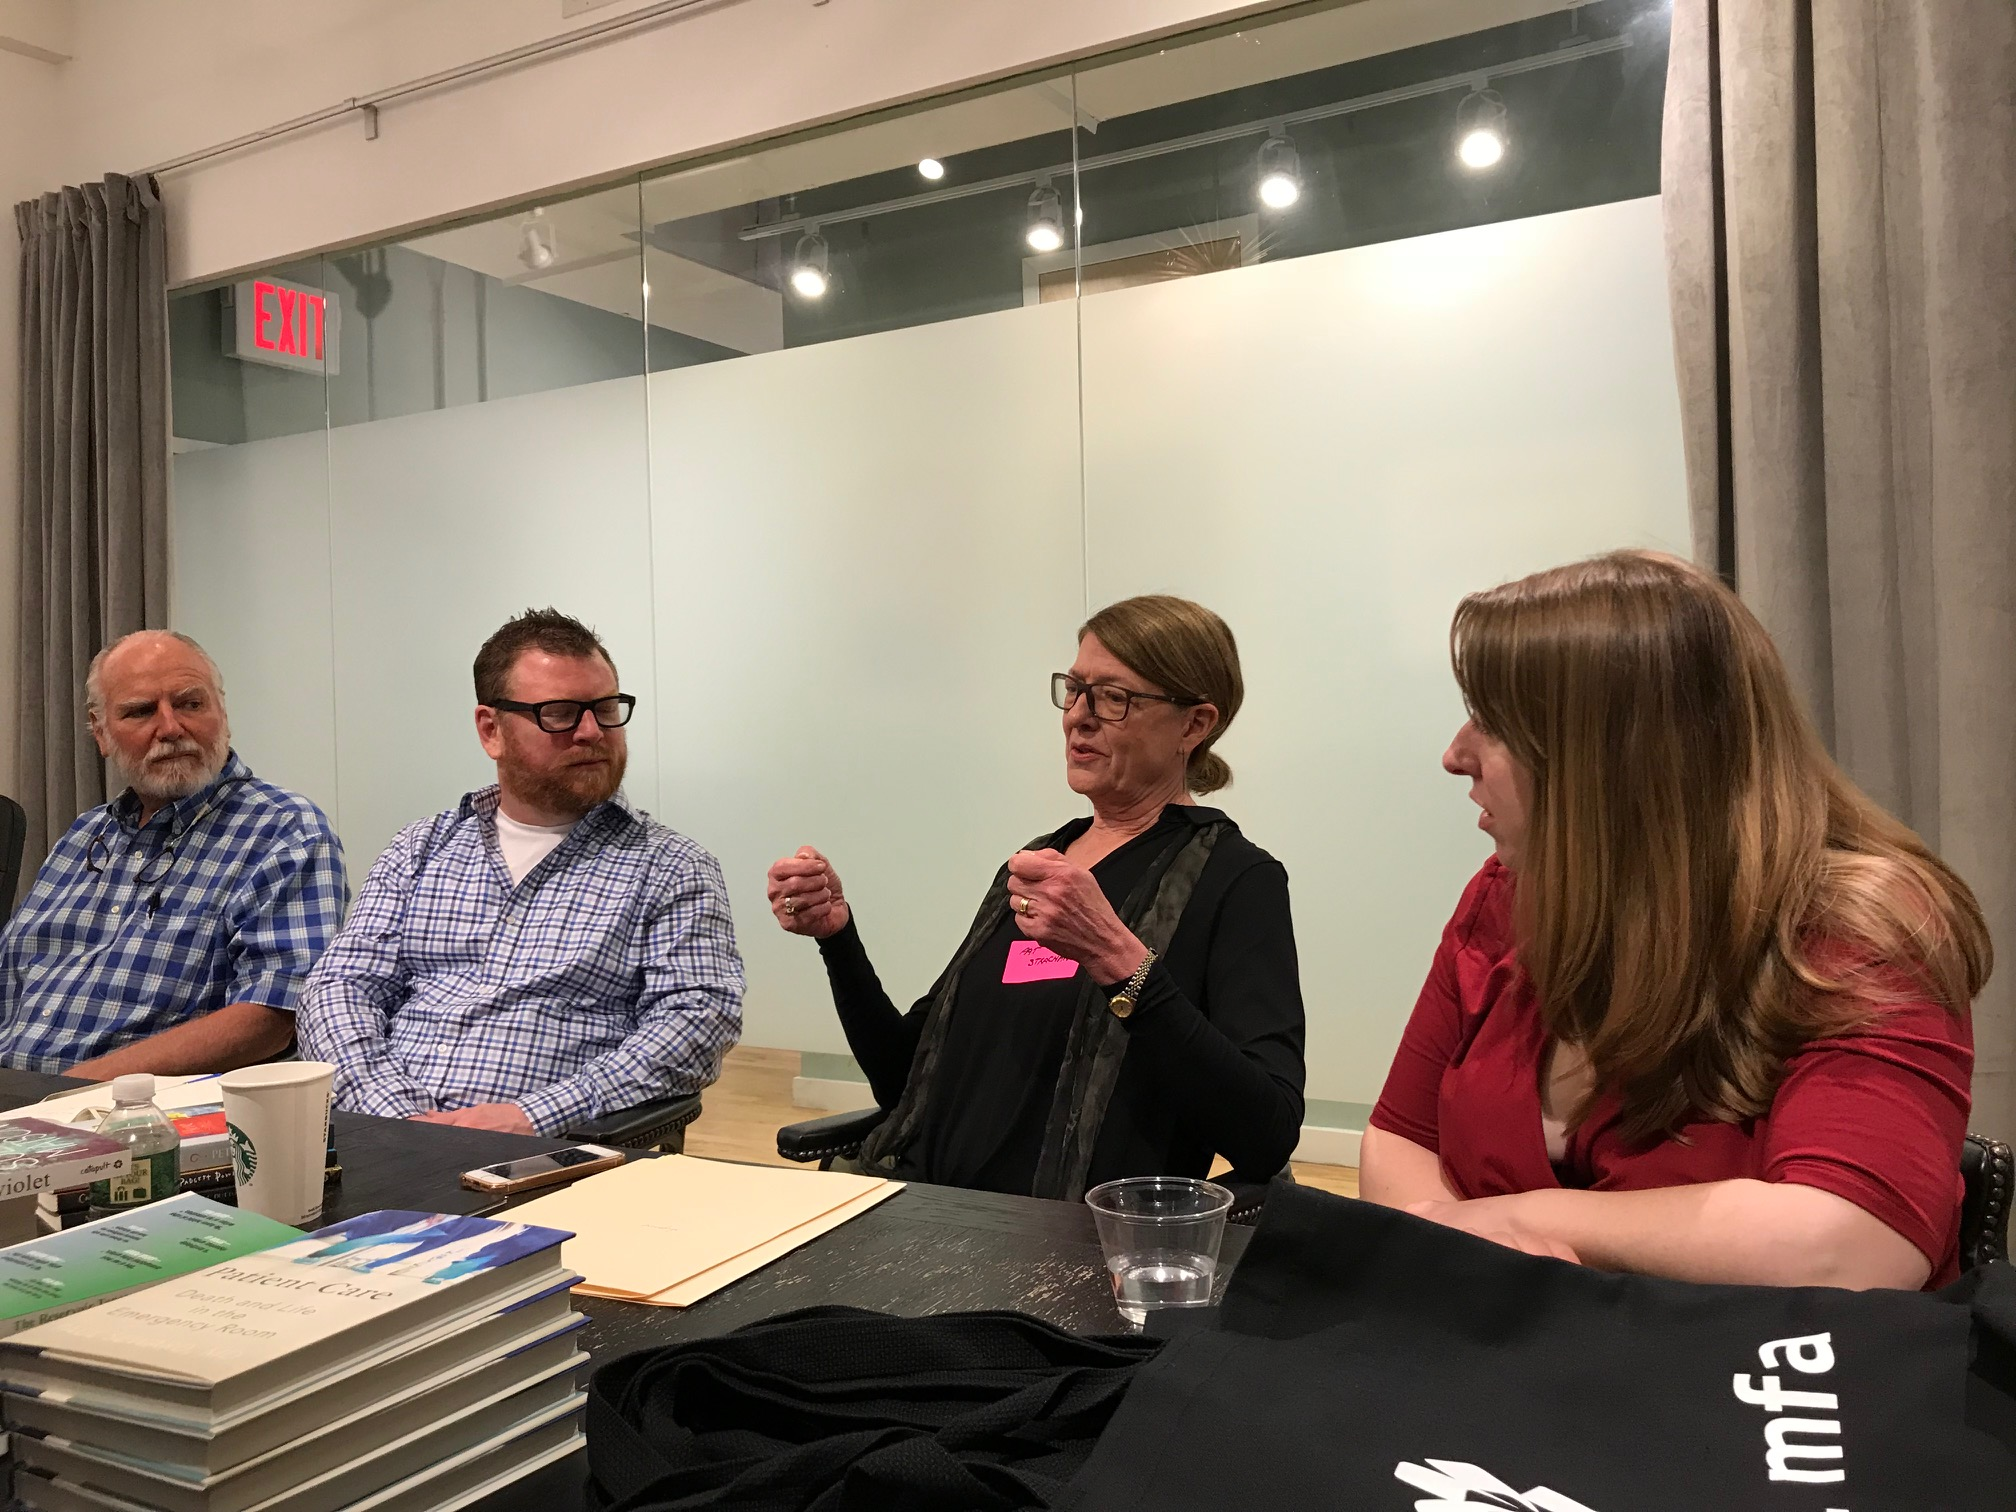 Catapult Editor in Chief Pat Strong pitches upcoming books at Meet the Editor.